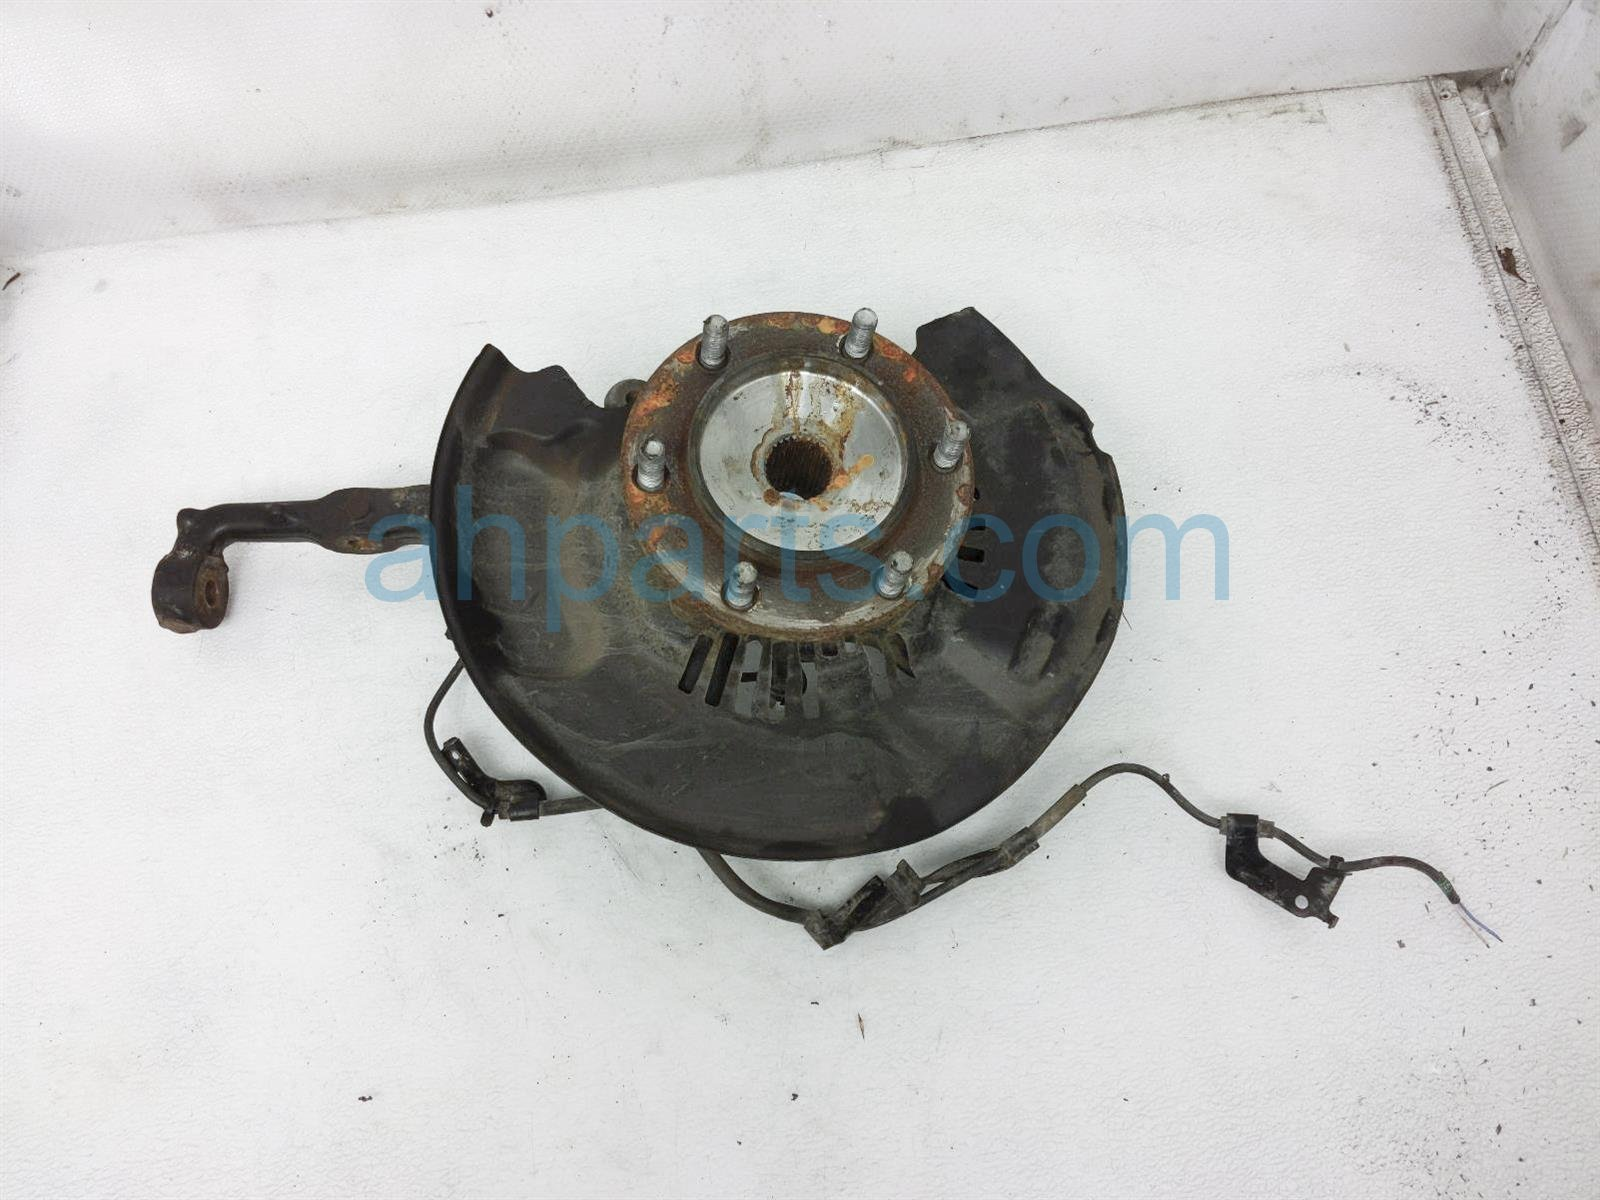 2017 Toyota Tacoma Front Driver Spindle Knuckle Hub 43212 04050 Replacement